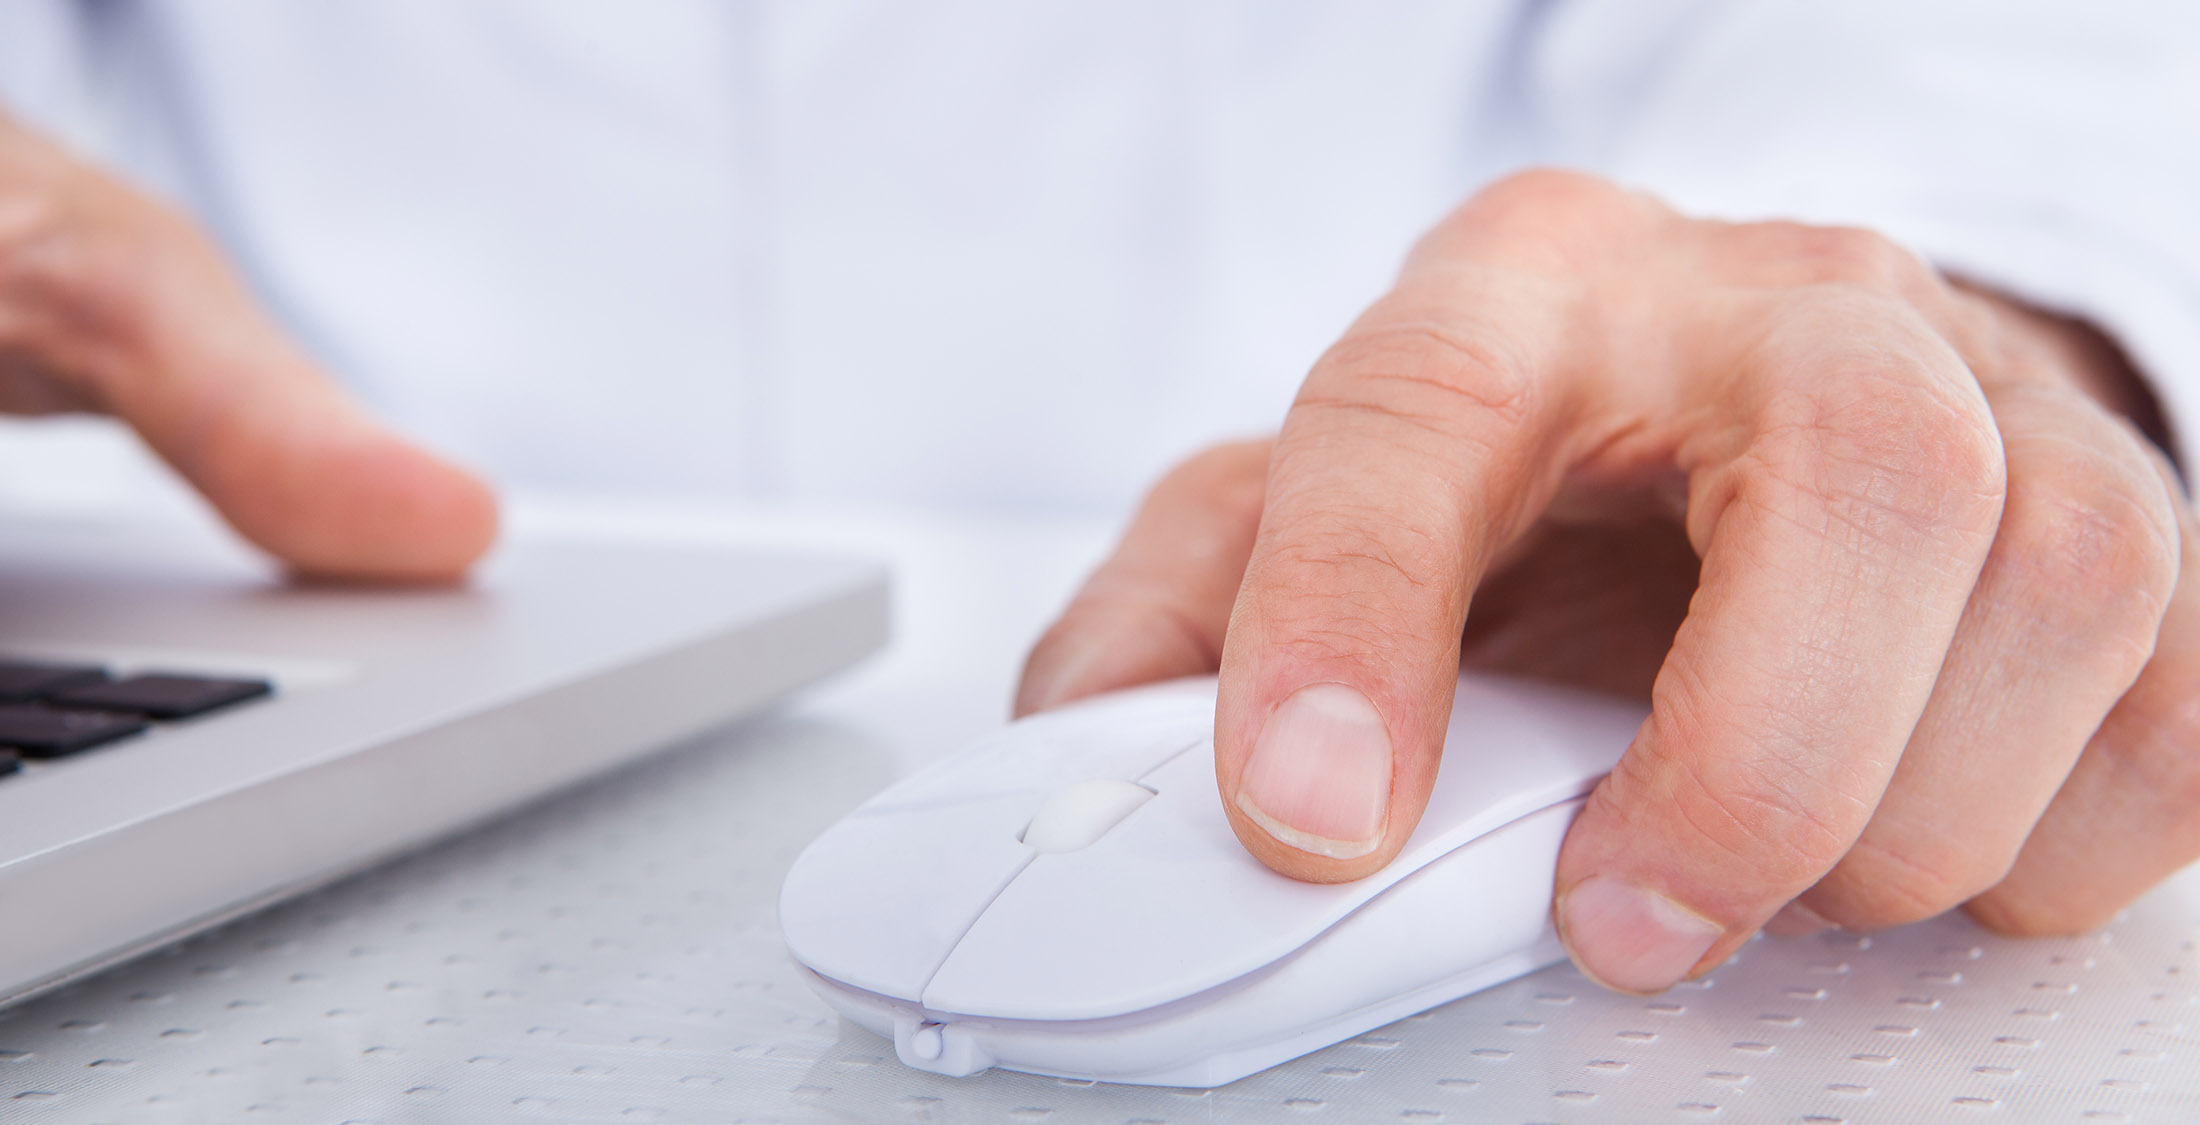 closeup of person's hand using computer mouse